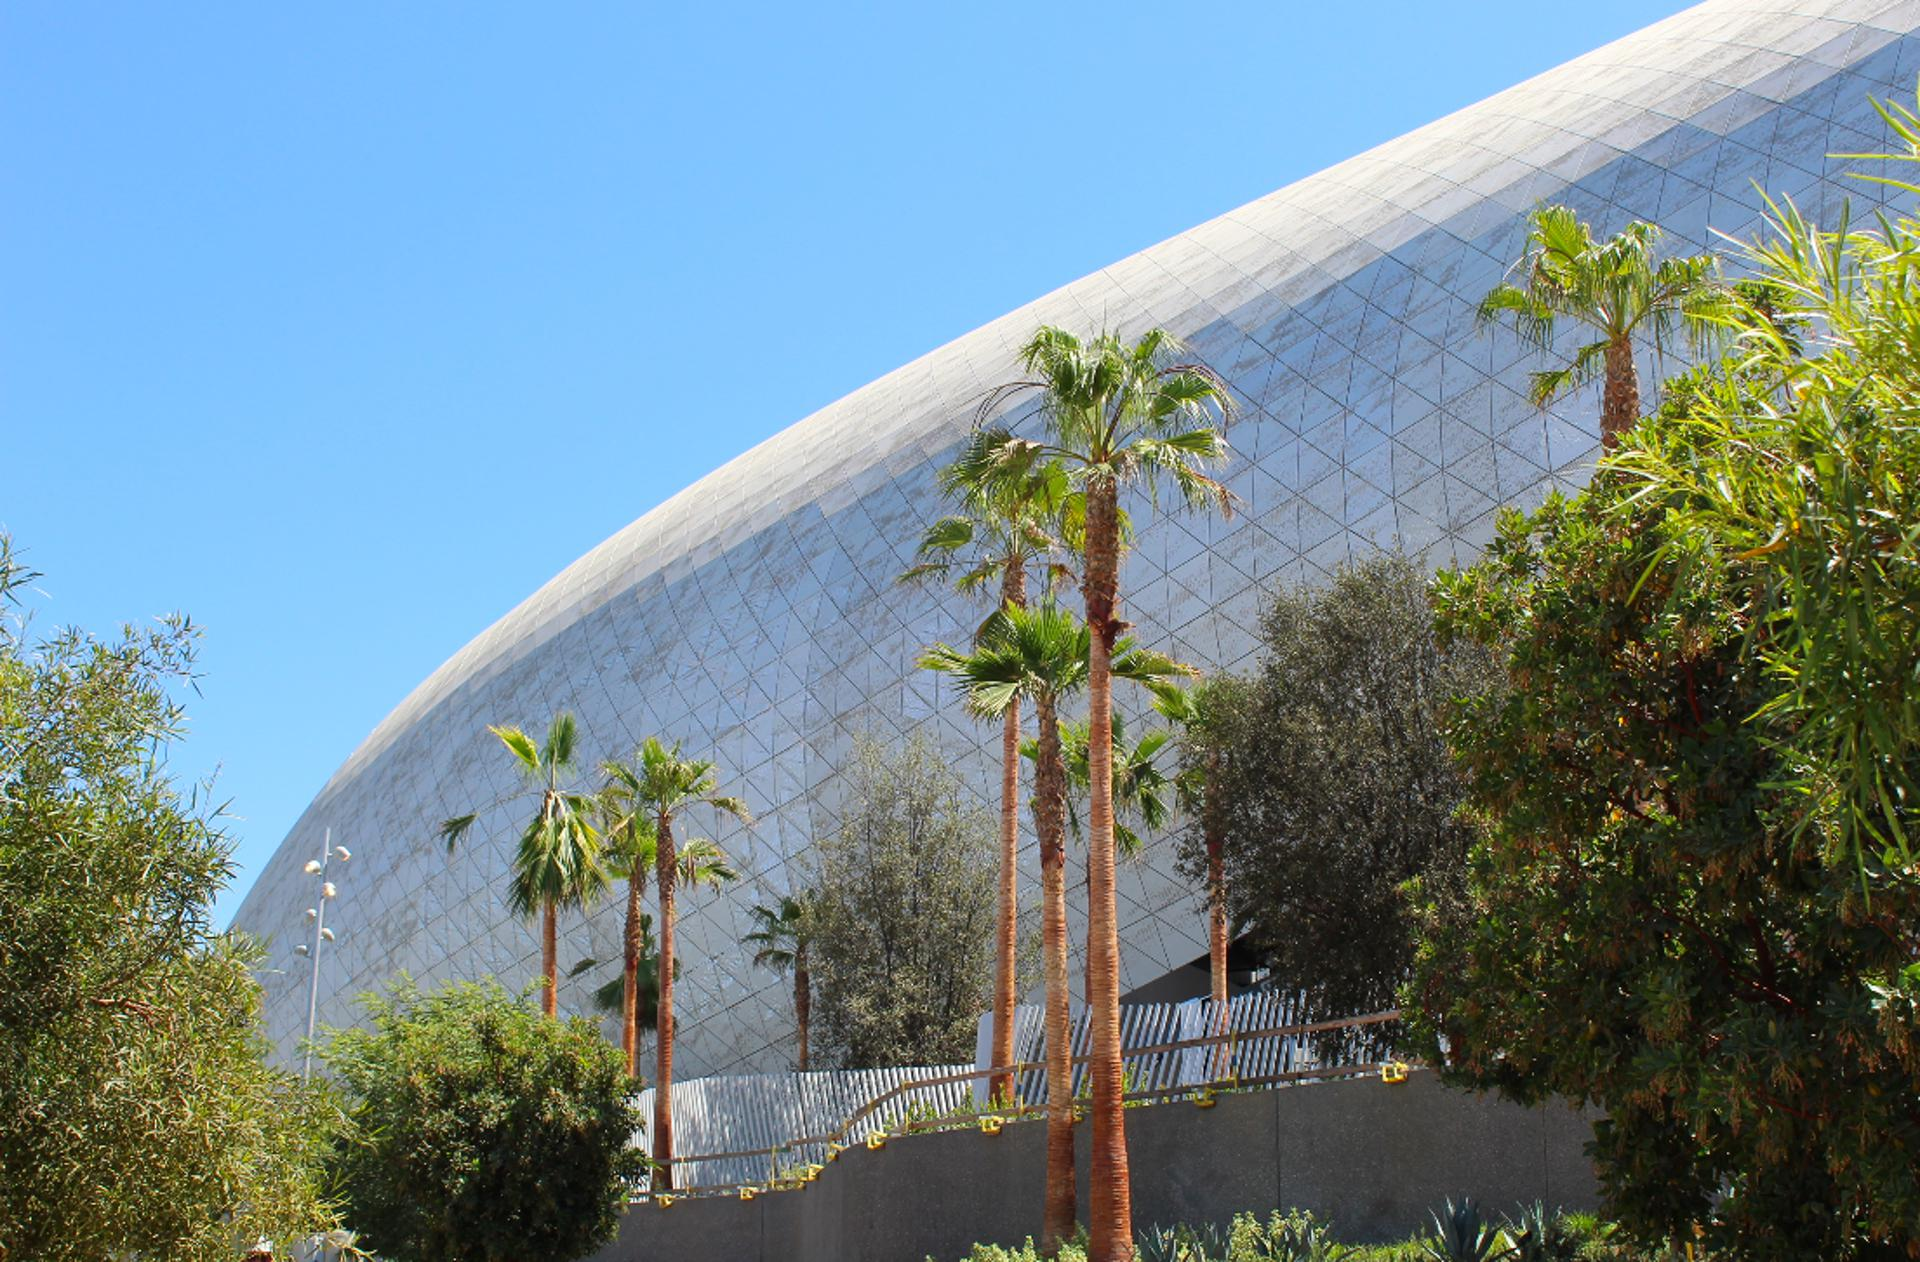 A daylight view of the perforated aluminum panel canopy and skin for SoFi Stadium.